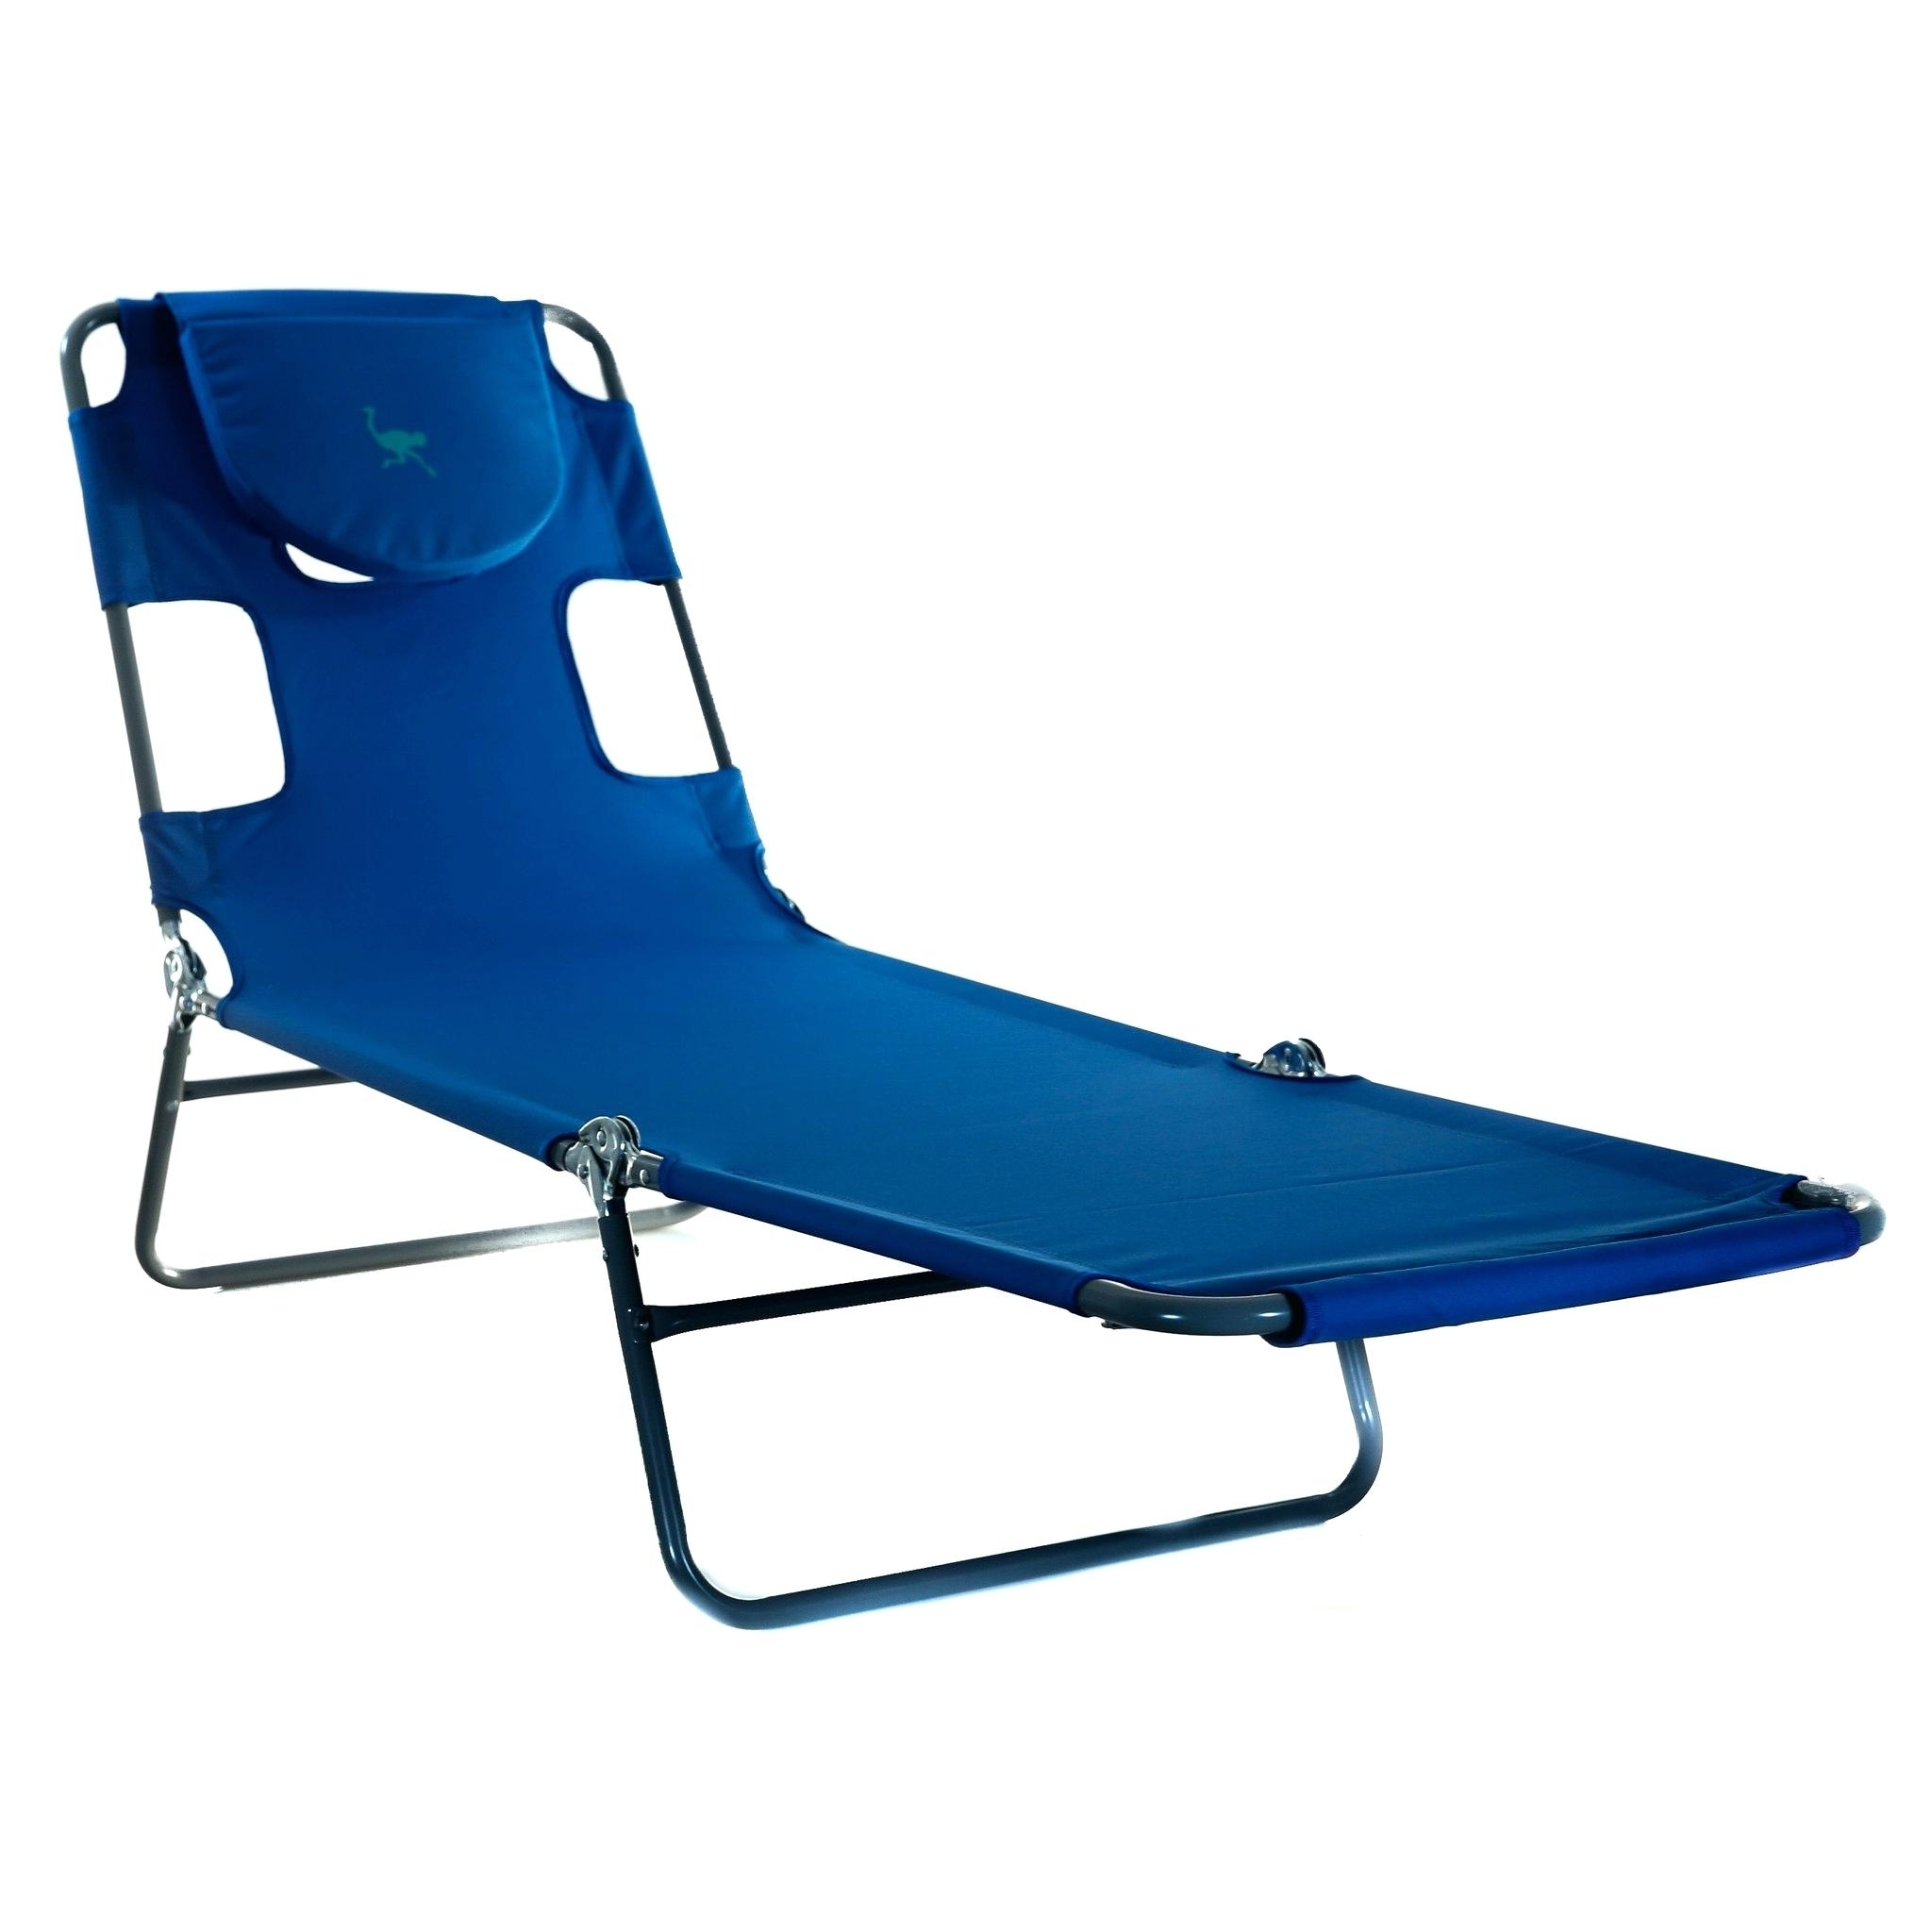 copy ludwig patio sk sling aluminum ludwigchaise chaise folding lounge garden chairs edit royal products with chair yotrio wheels